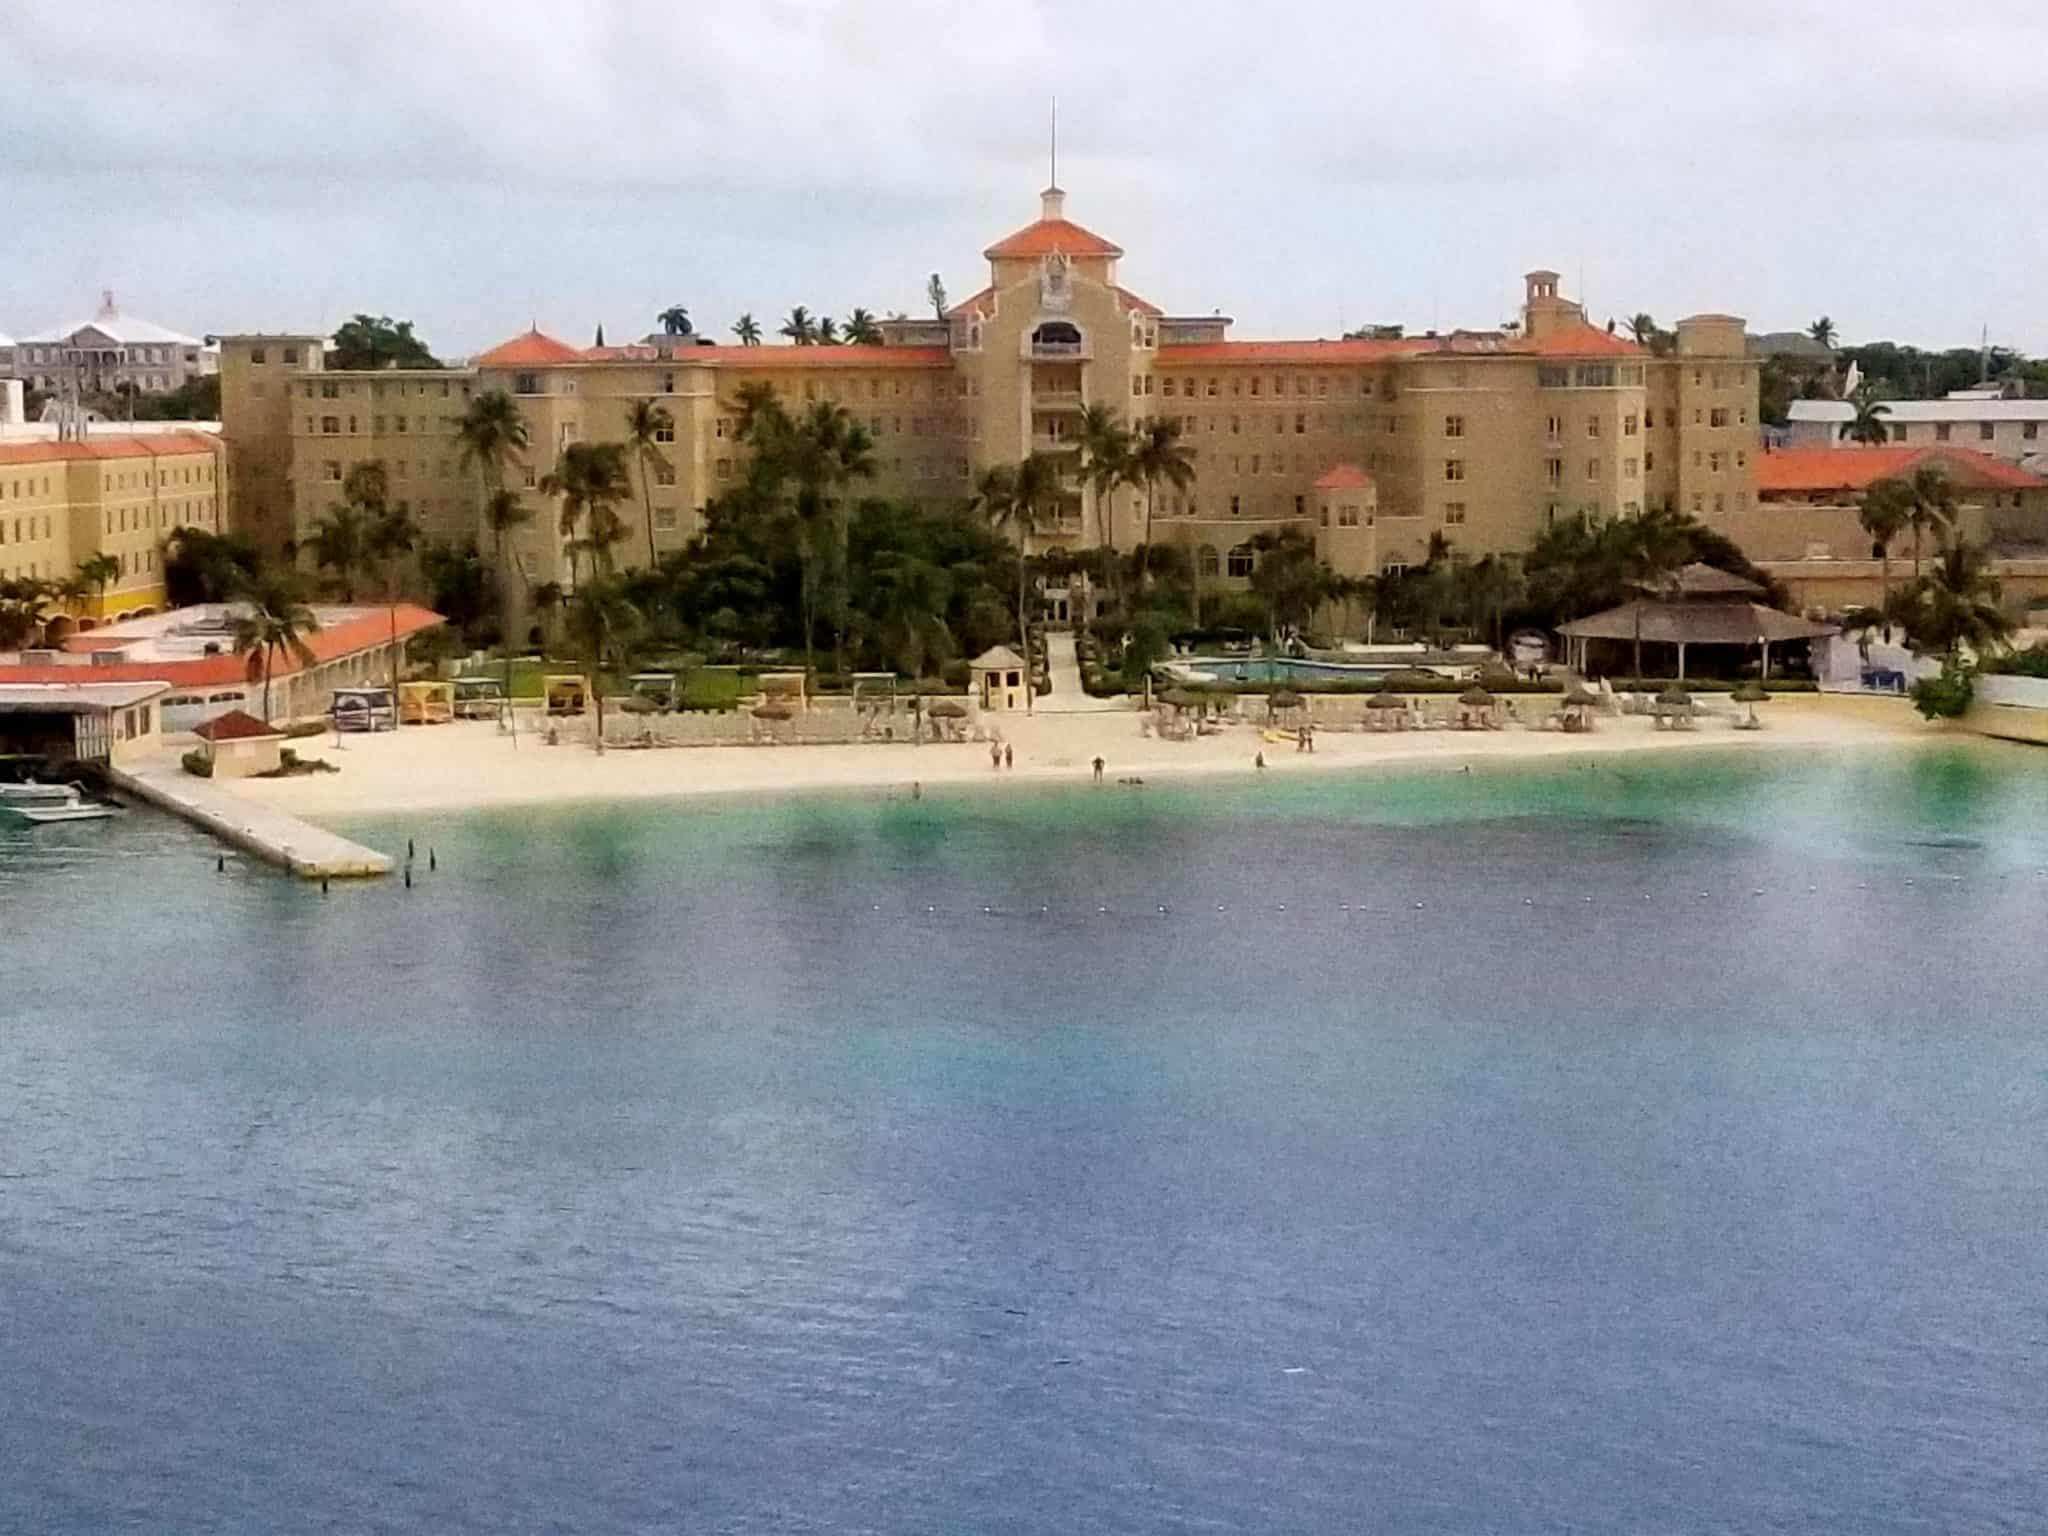 Looking at the British Colonial Hilton from our Balcony Cabin